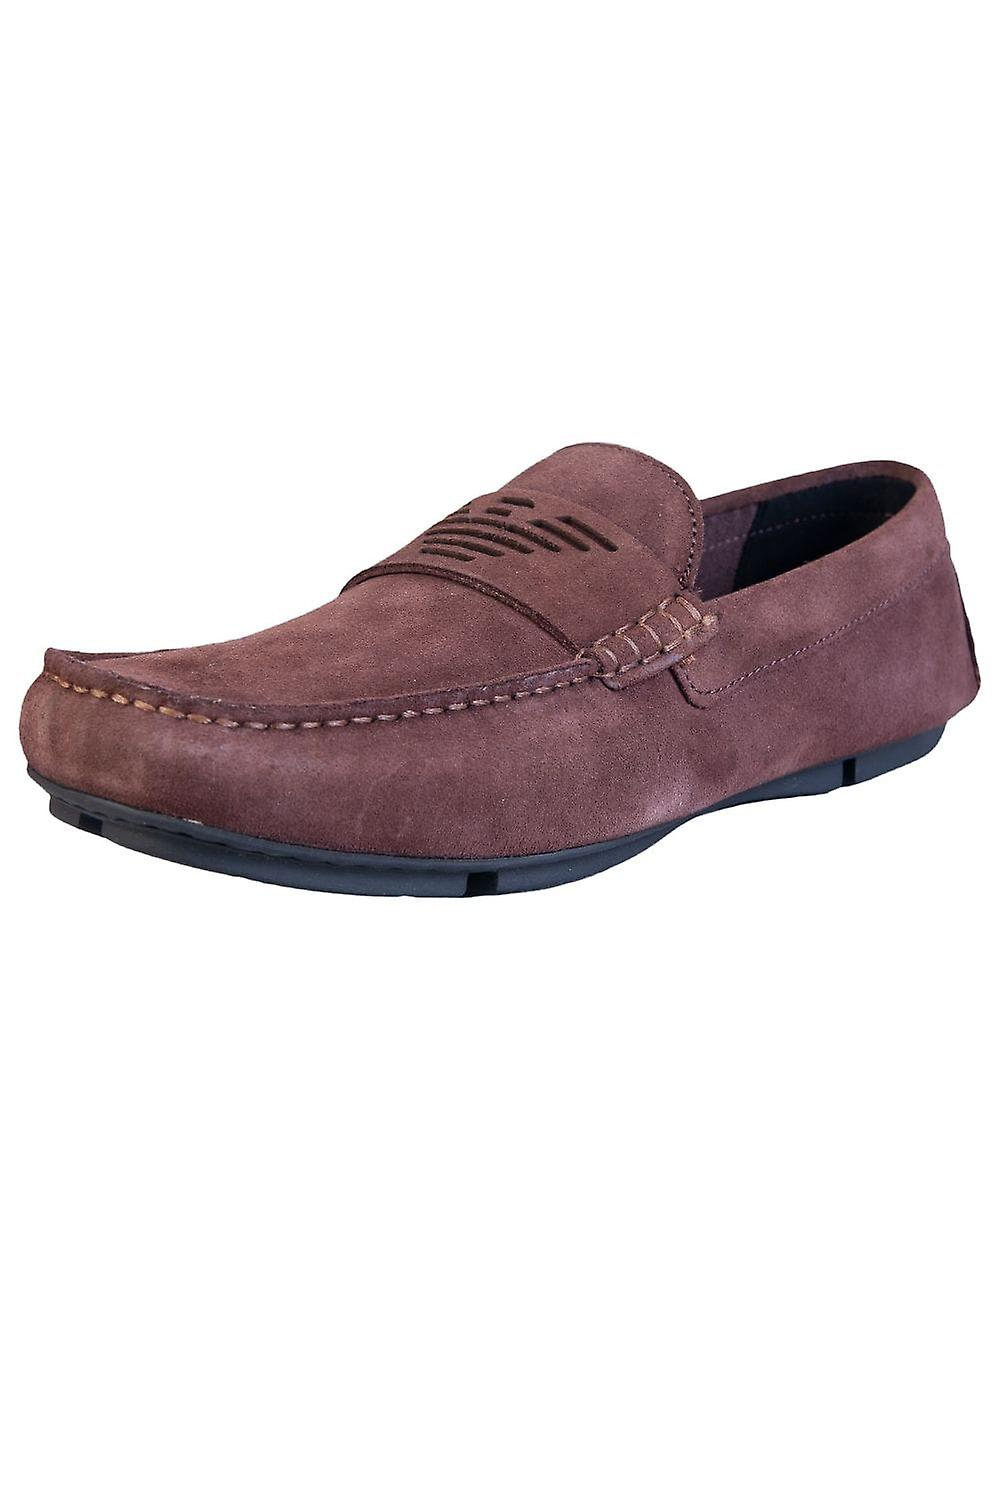 Hudson Loafers Shoes DICKSON SUEDE